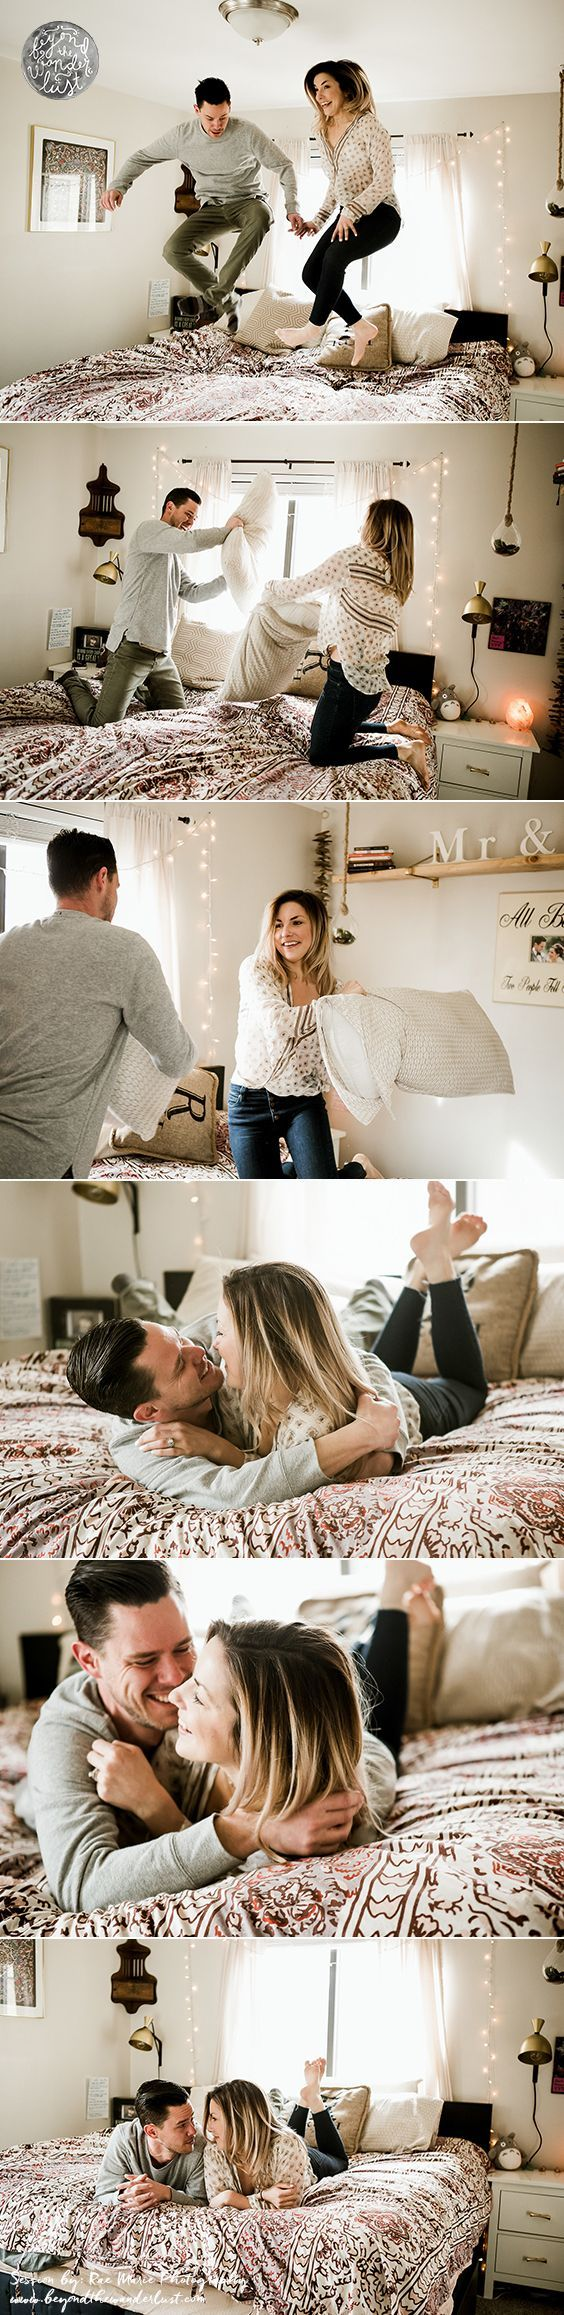 Pillow fight >> In Home Lifestyle couple session